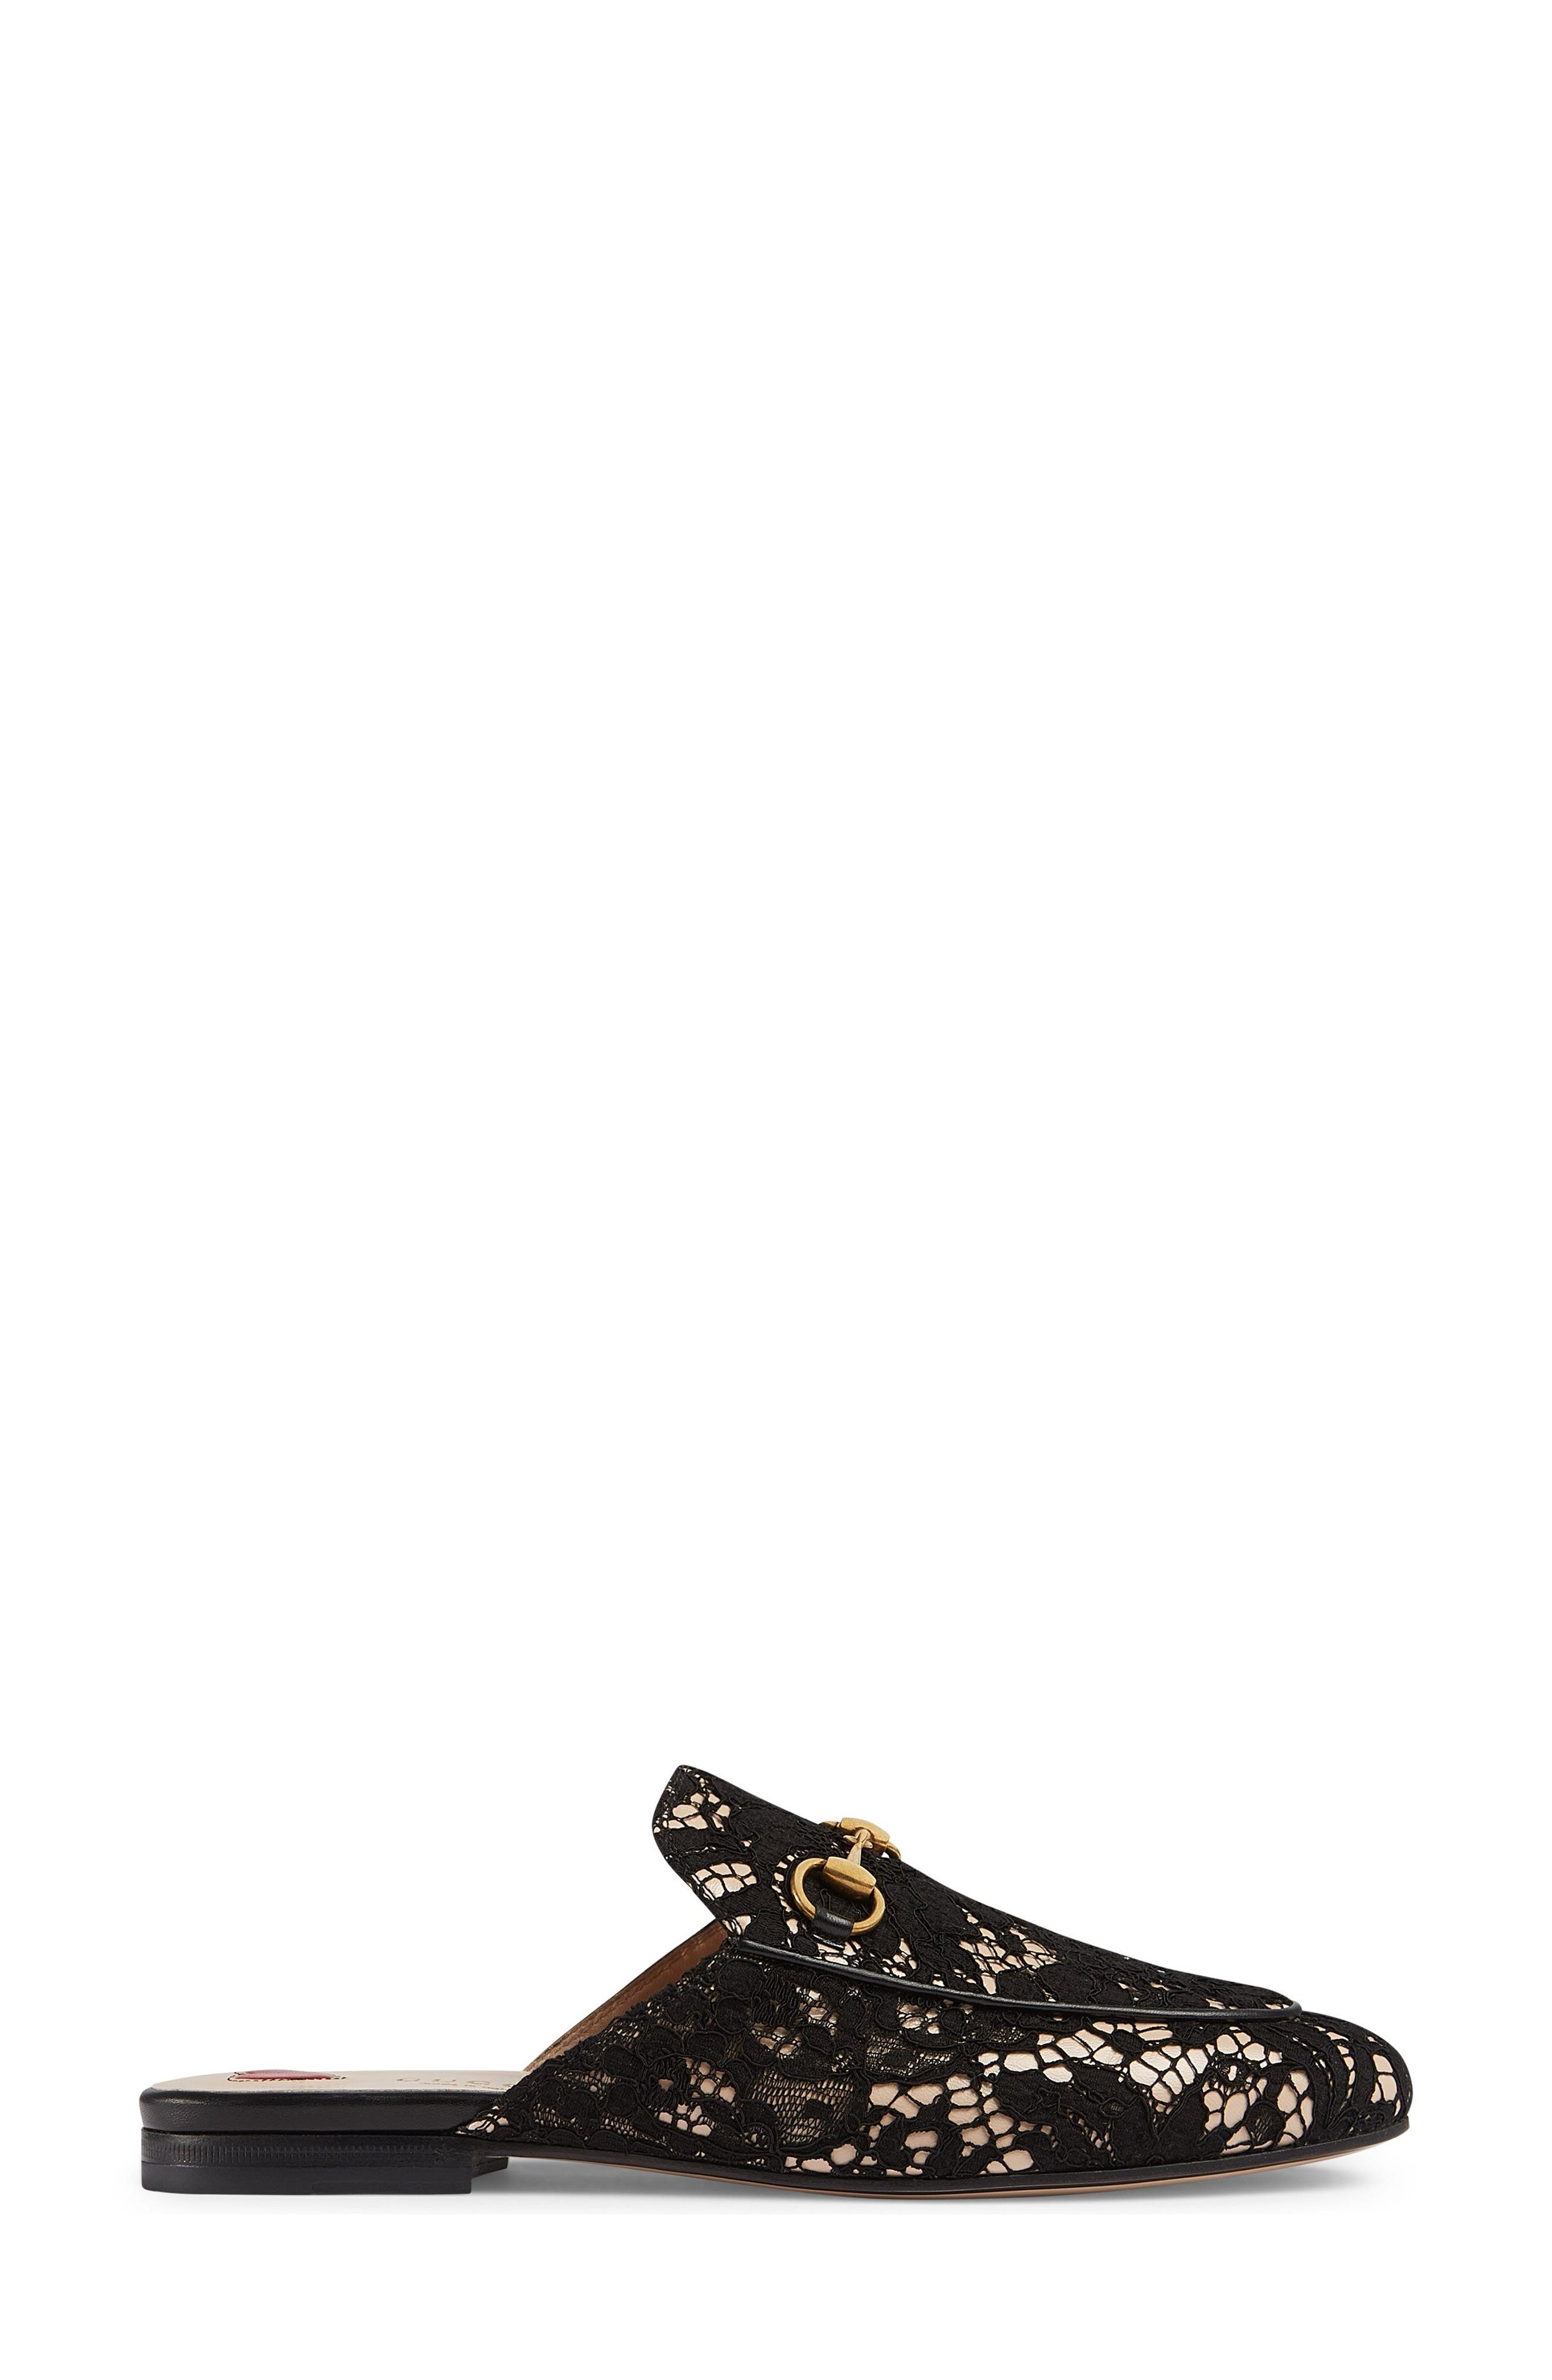 Main Image - Gucci Lace Princetown Loafer Mule (Women)